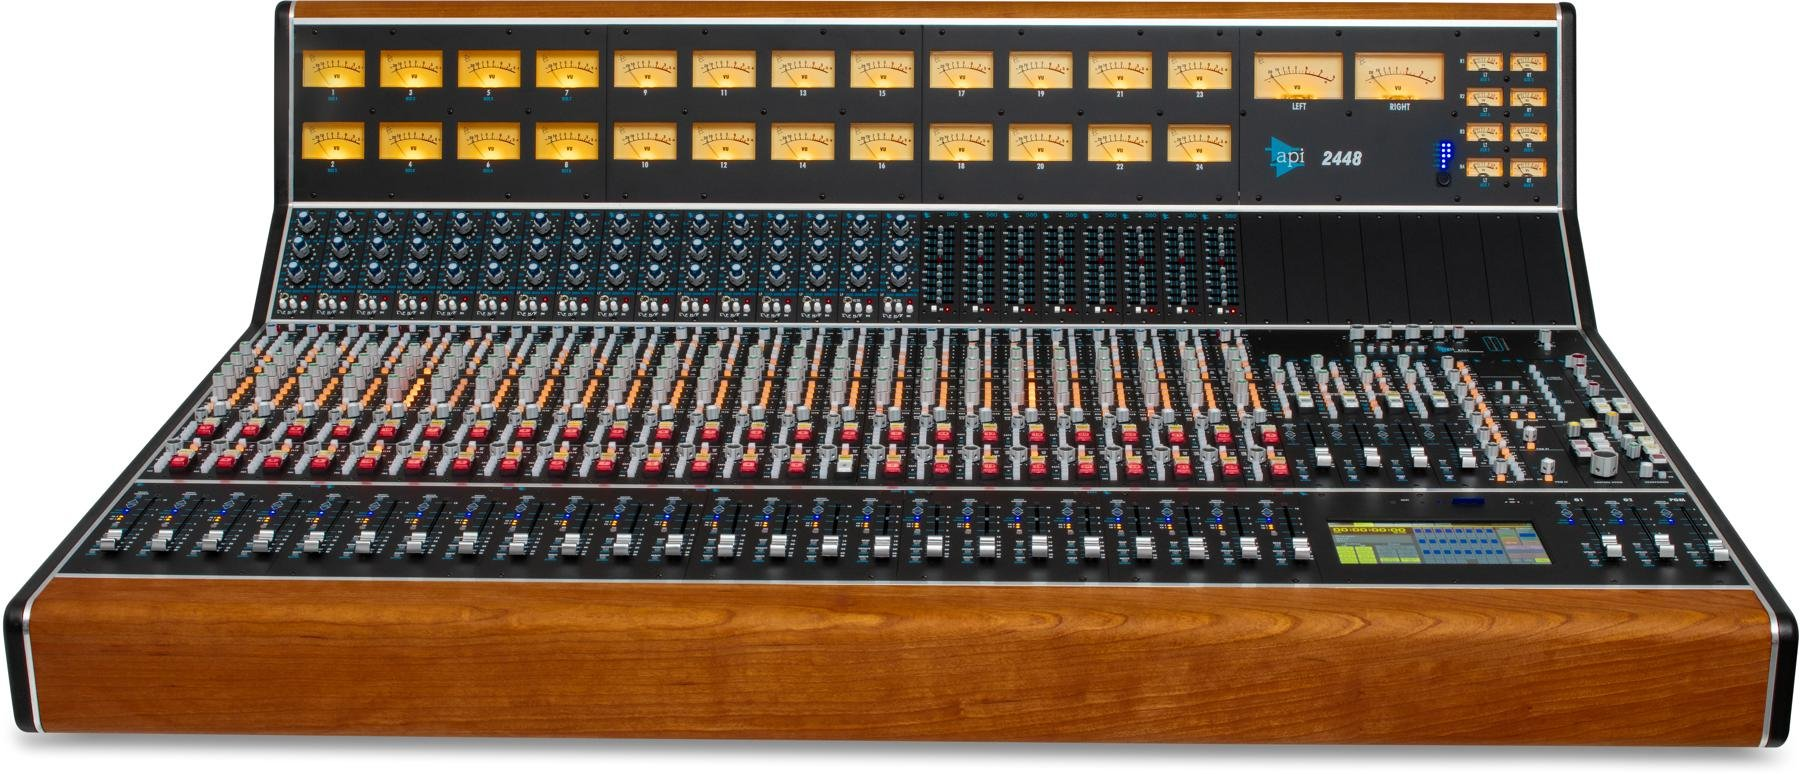 API 2448 24-channel Recording and Mixing Console with Automation image 1